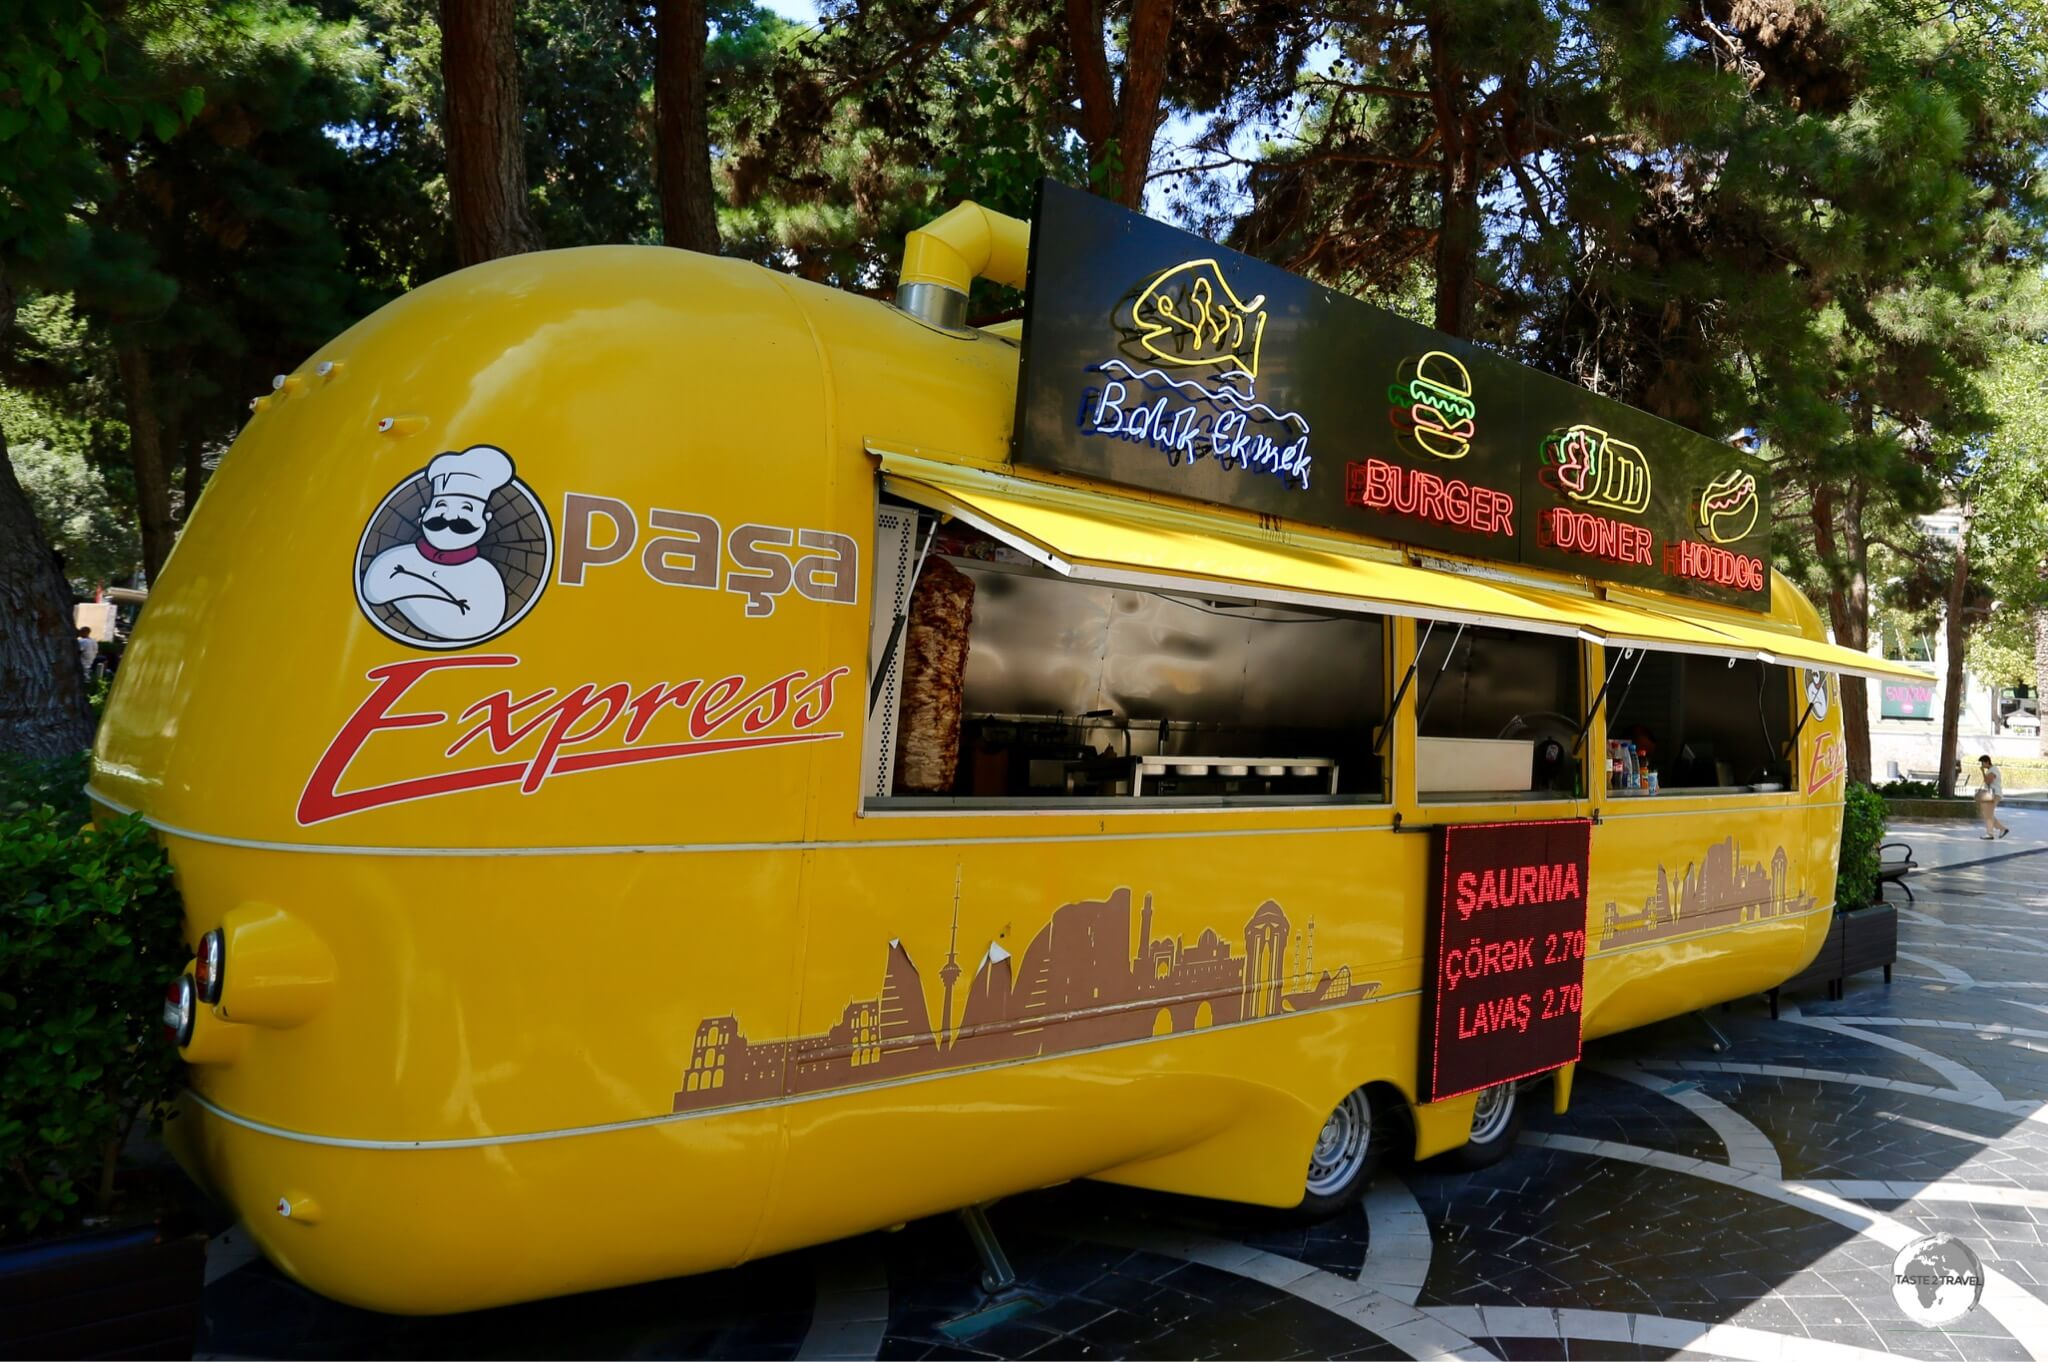 Colourful food trucks can be found throughout the downtown area of Baku.